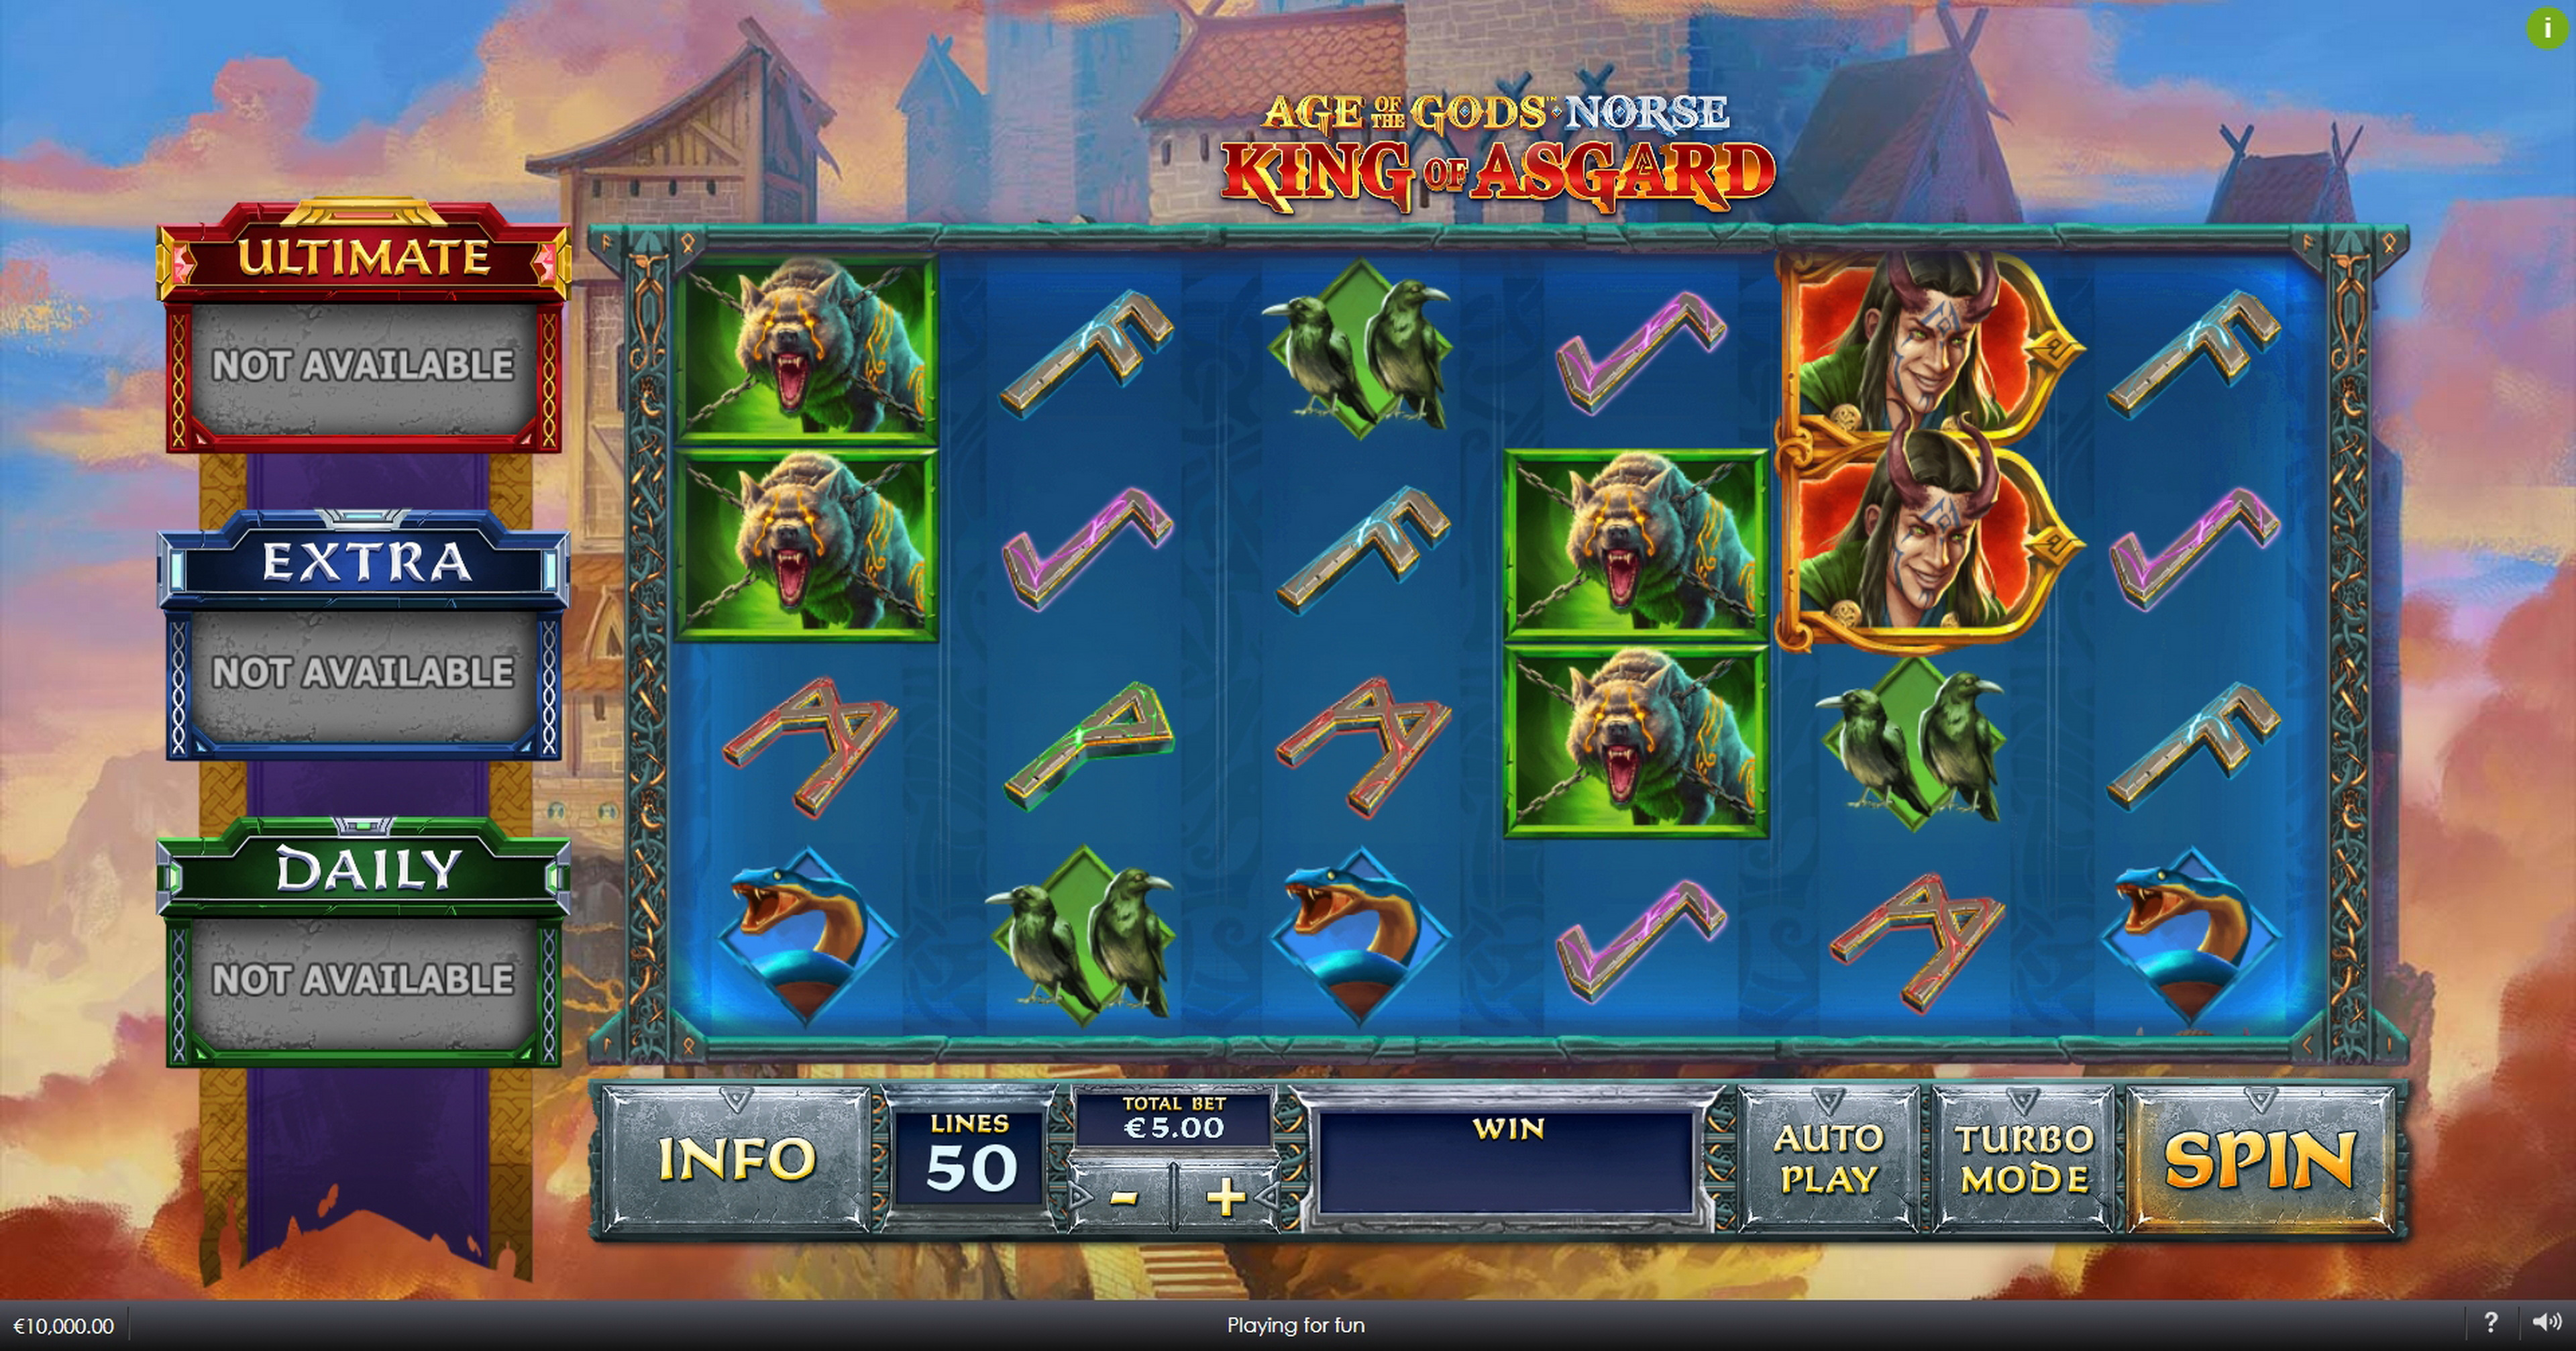 Reels in Age of the Gods Norse King of Asgard Slot Game by Ash Gaming